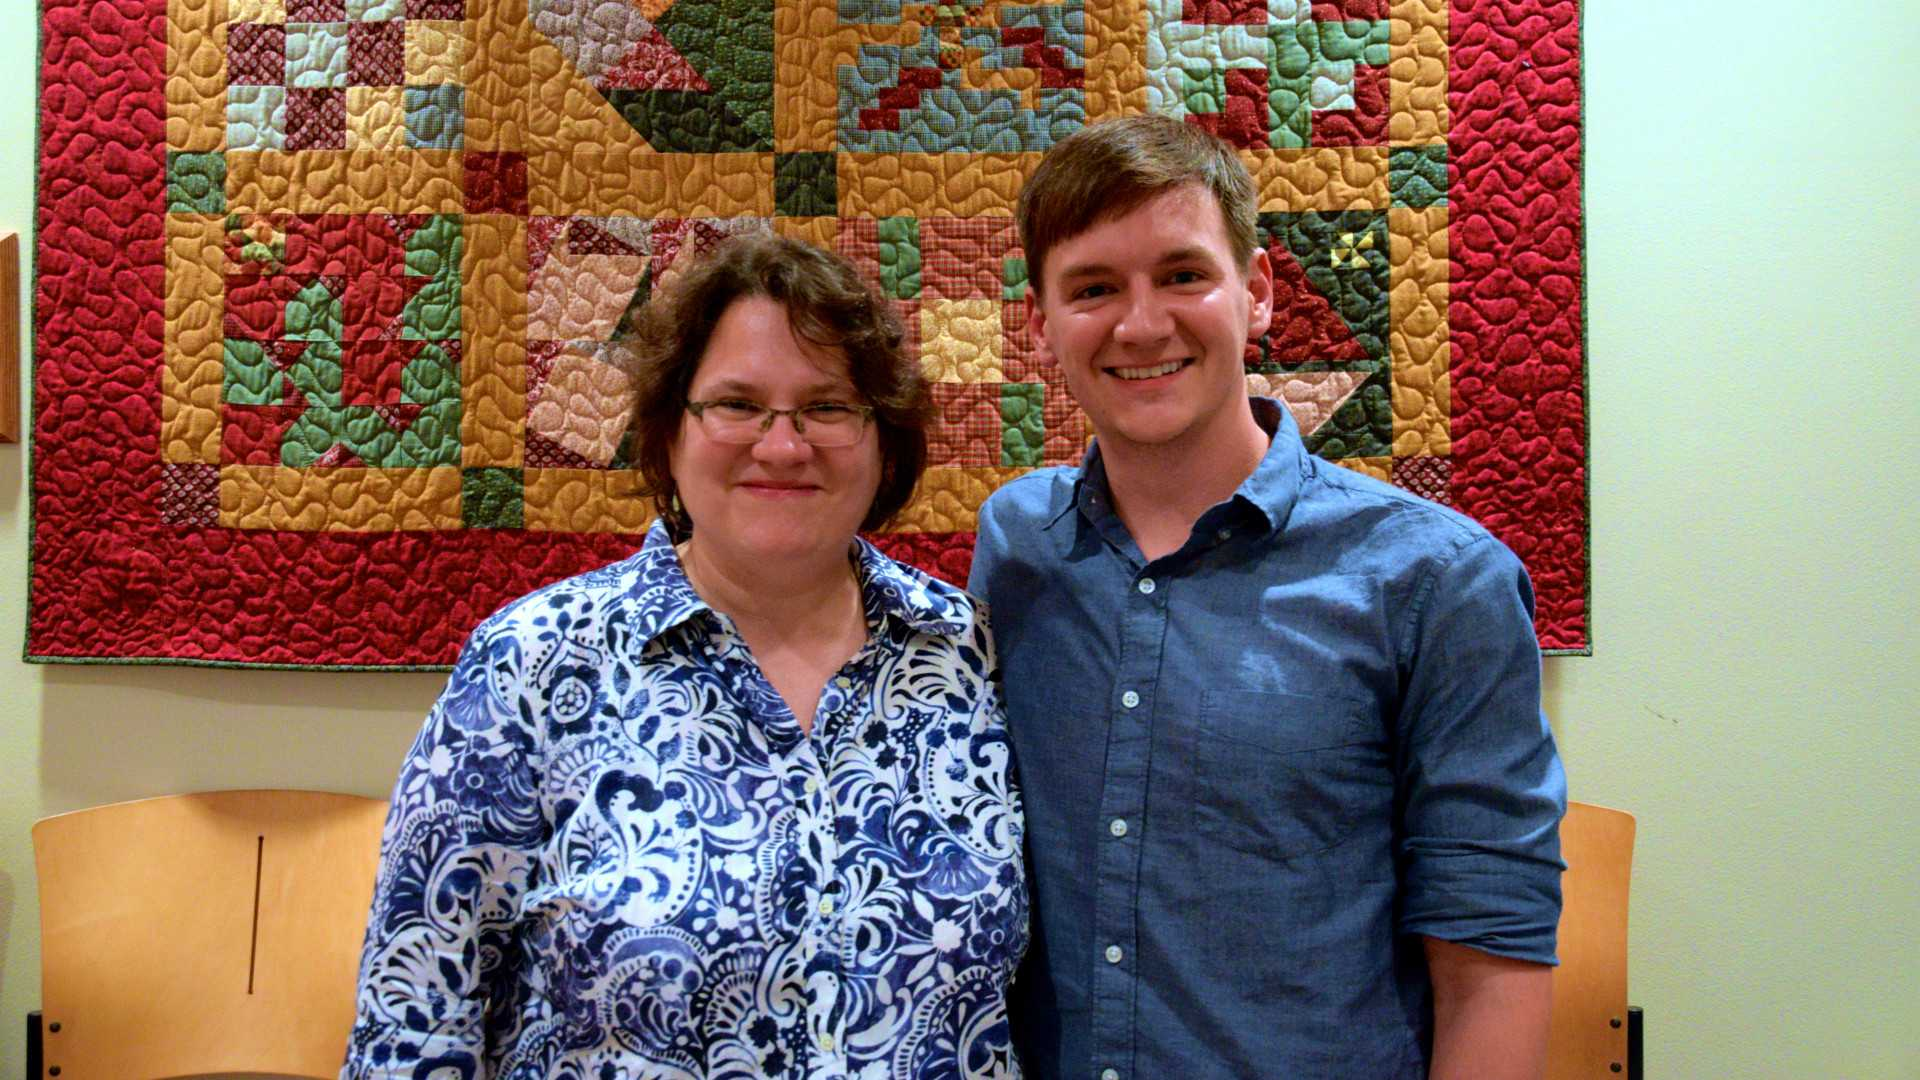 Sam Ross inspired many students and faculty, including CoryAnne Harrigan, a professor of English. Harrigan has known Ross since she was in graduate school and babysat Ross.